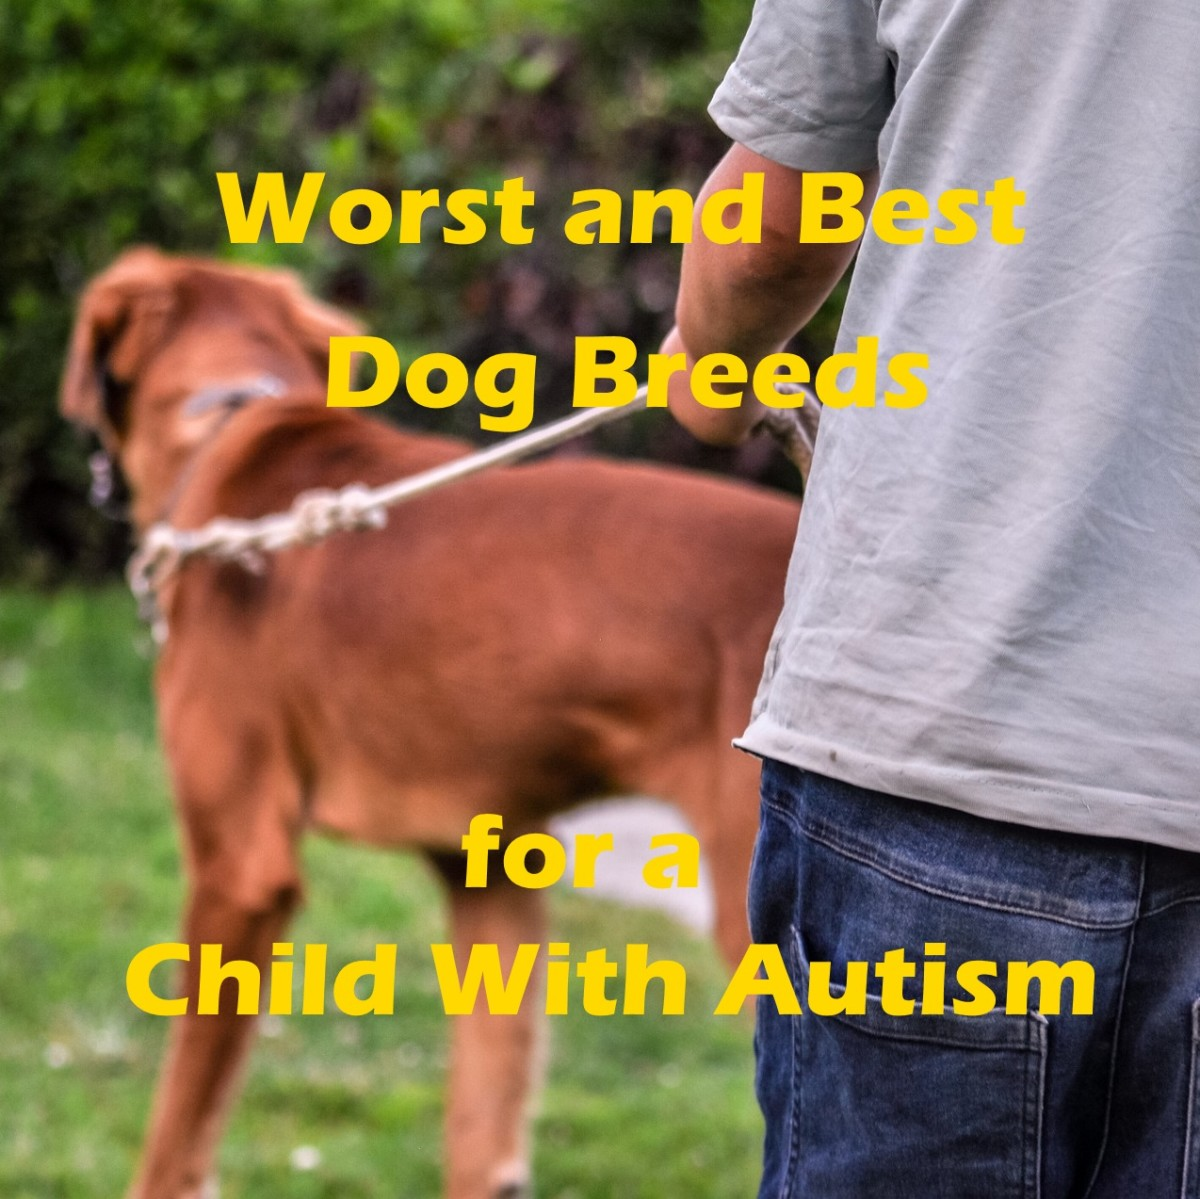 15 Worst Dog Breeds for a Child on the Autism Spectrum and 7 of the Best